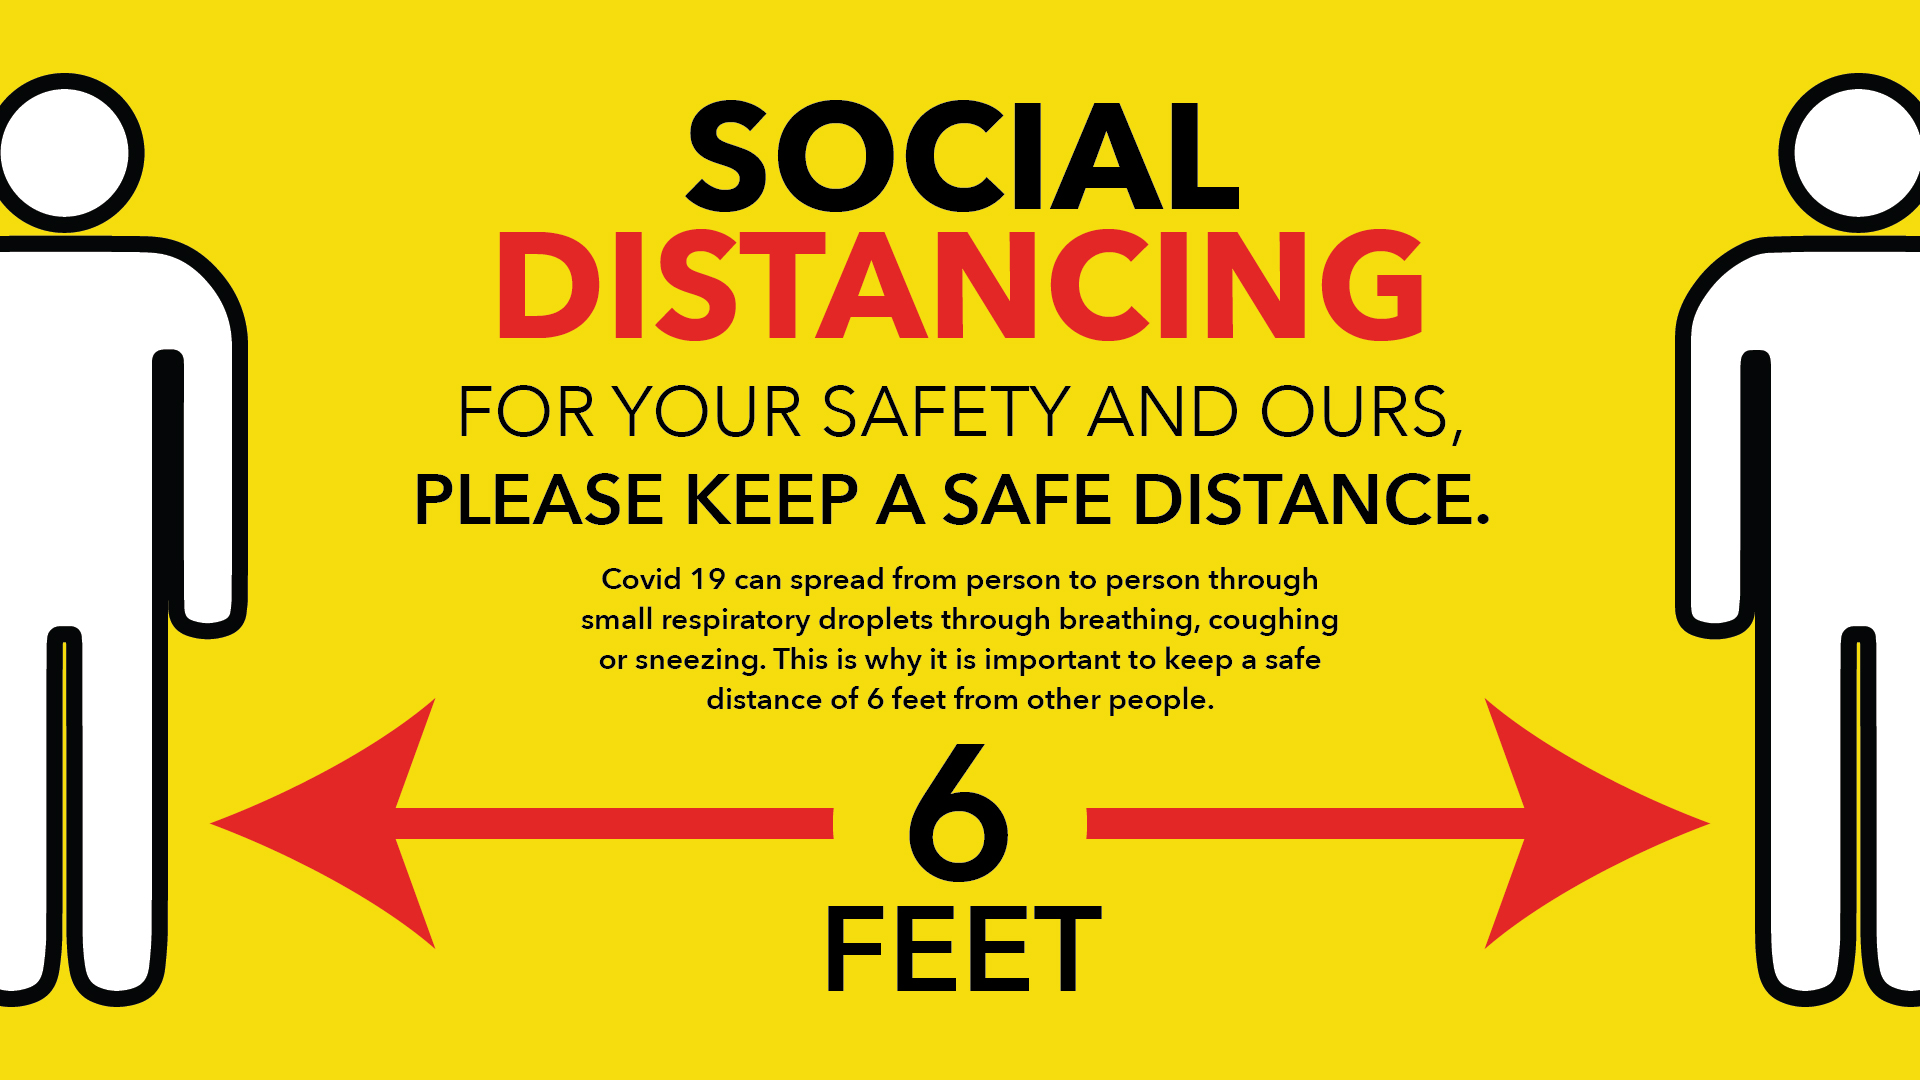 For Your Safety And Ours - Social Distancing Digital Signage Image